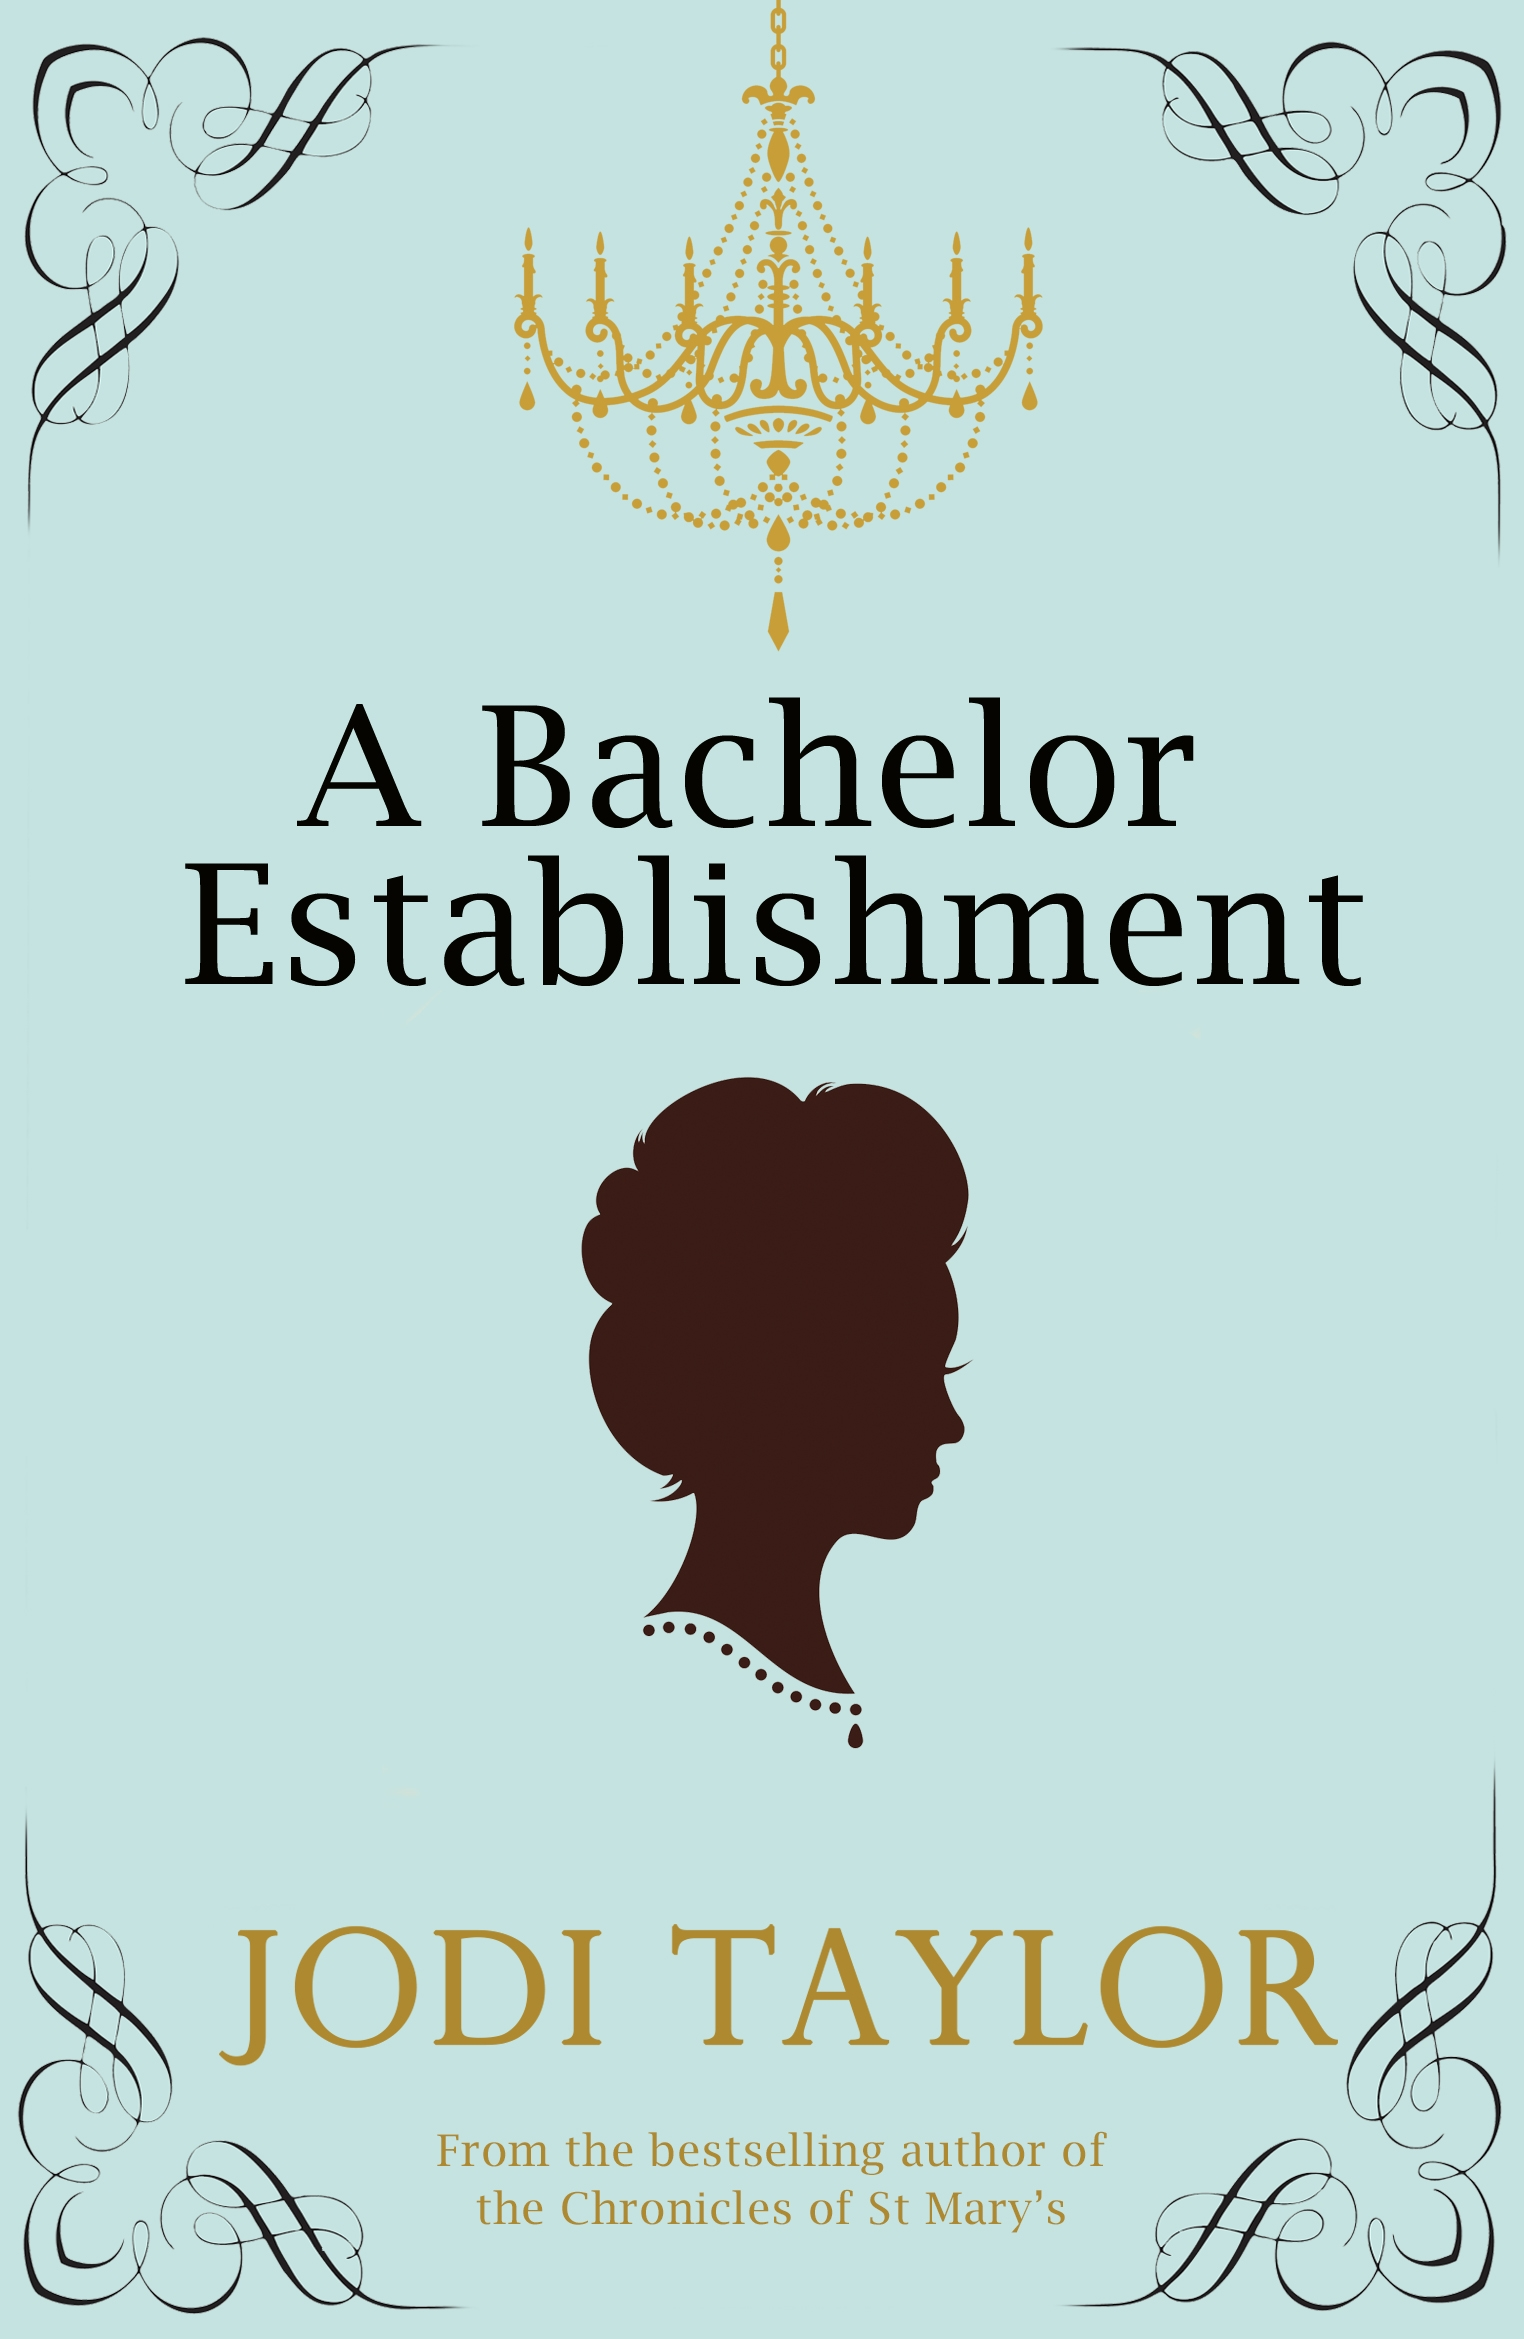 A Bachelor Establishment